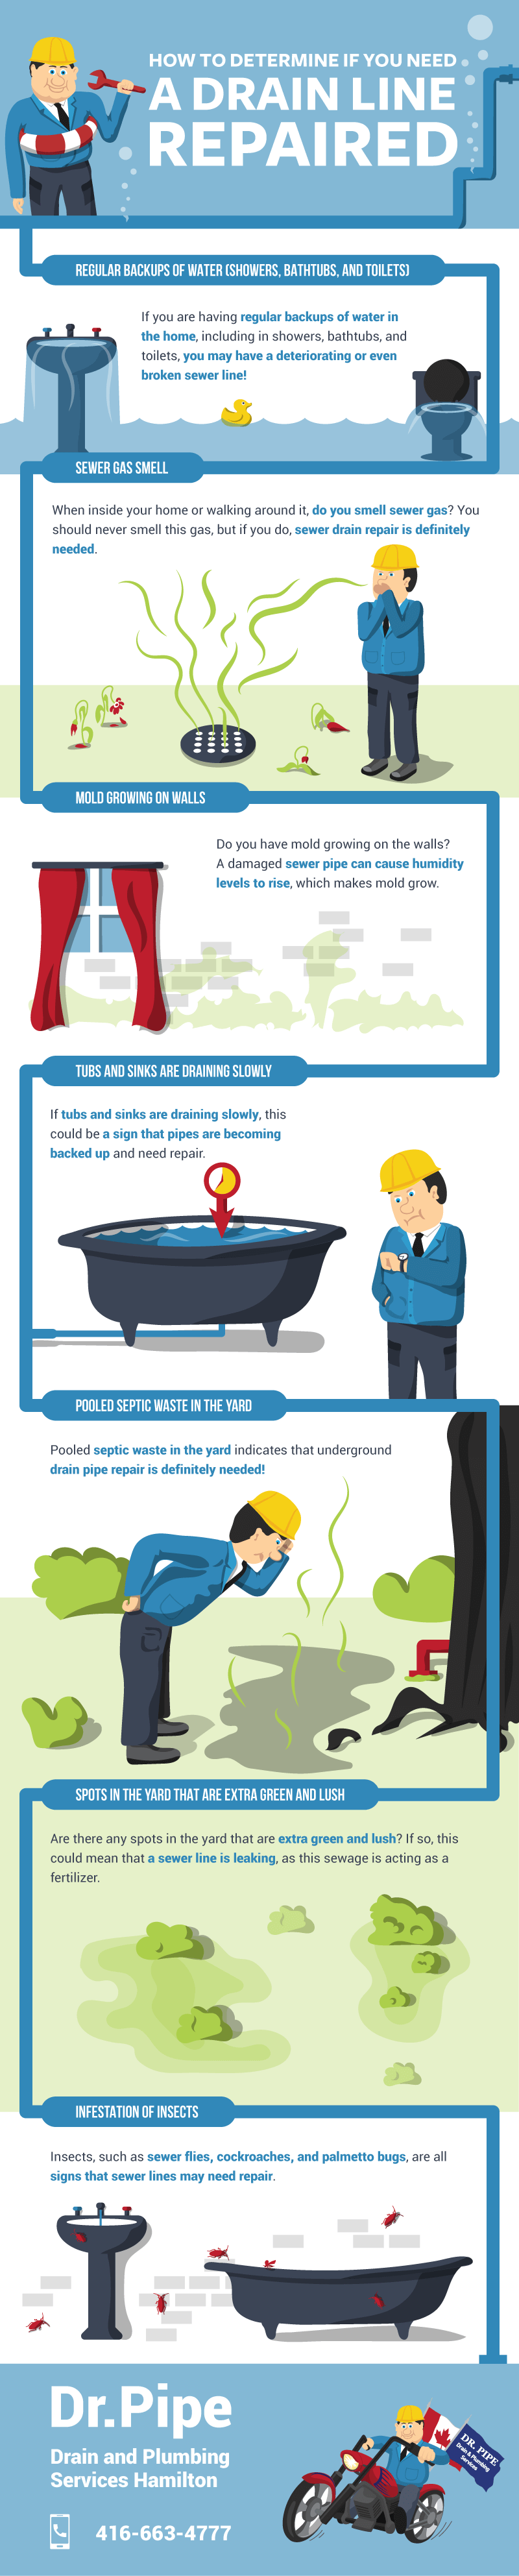 How to Determine if you Need a Drain Line Repaired